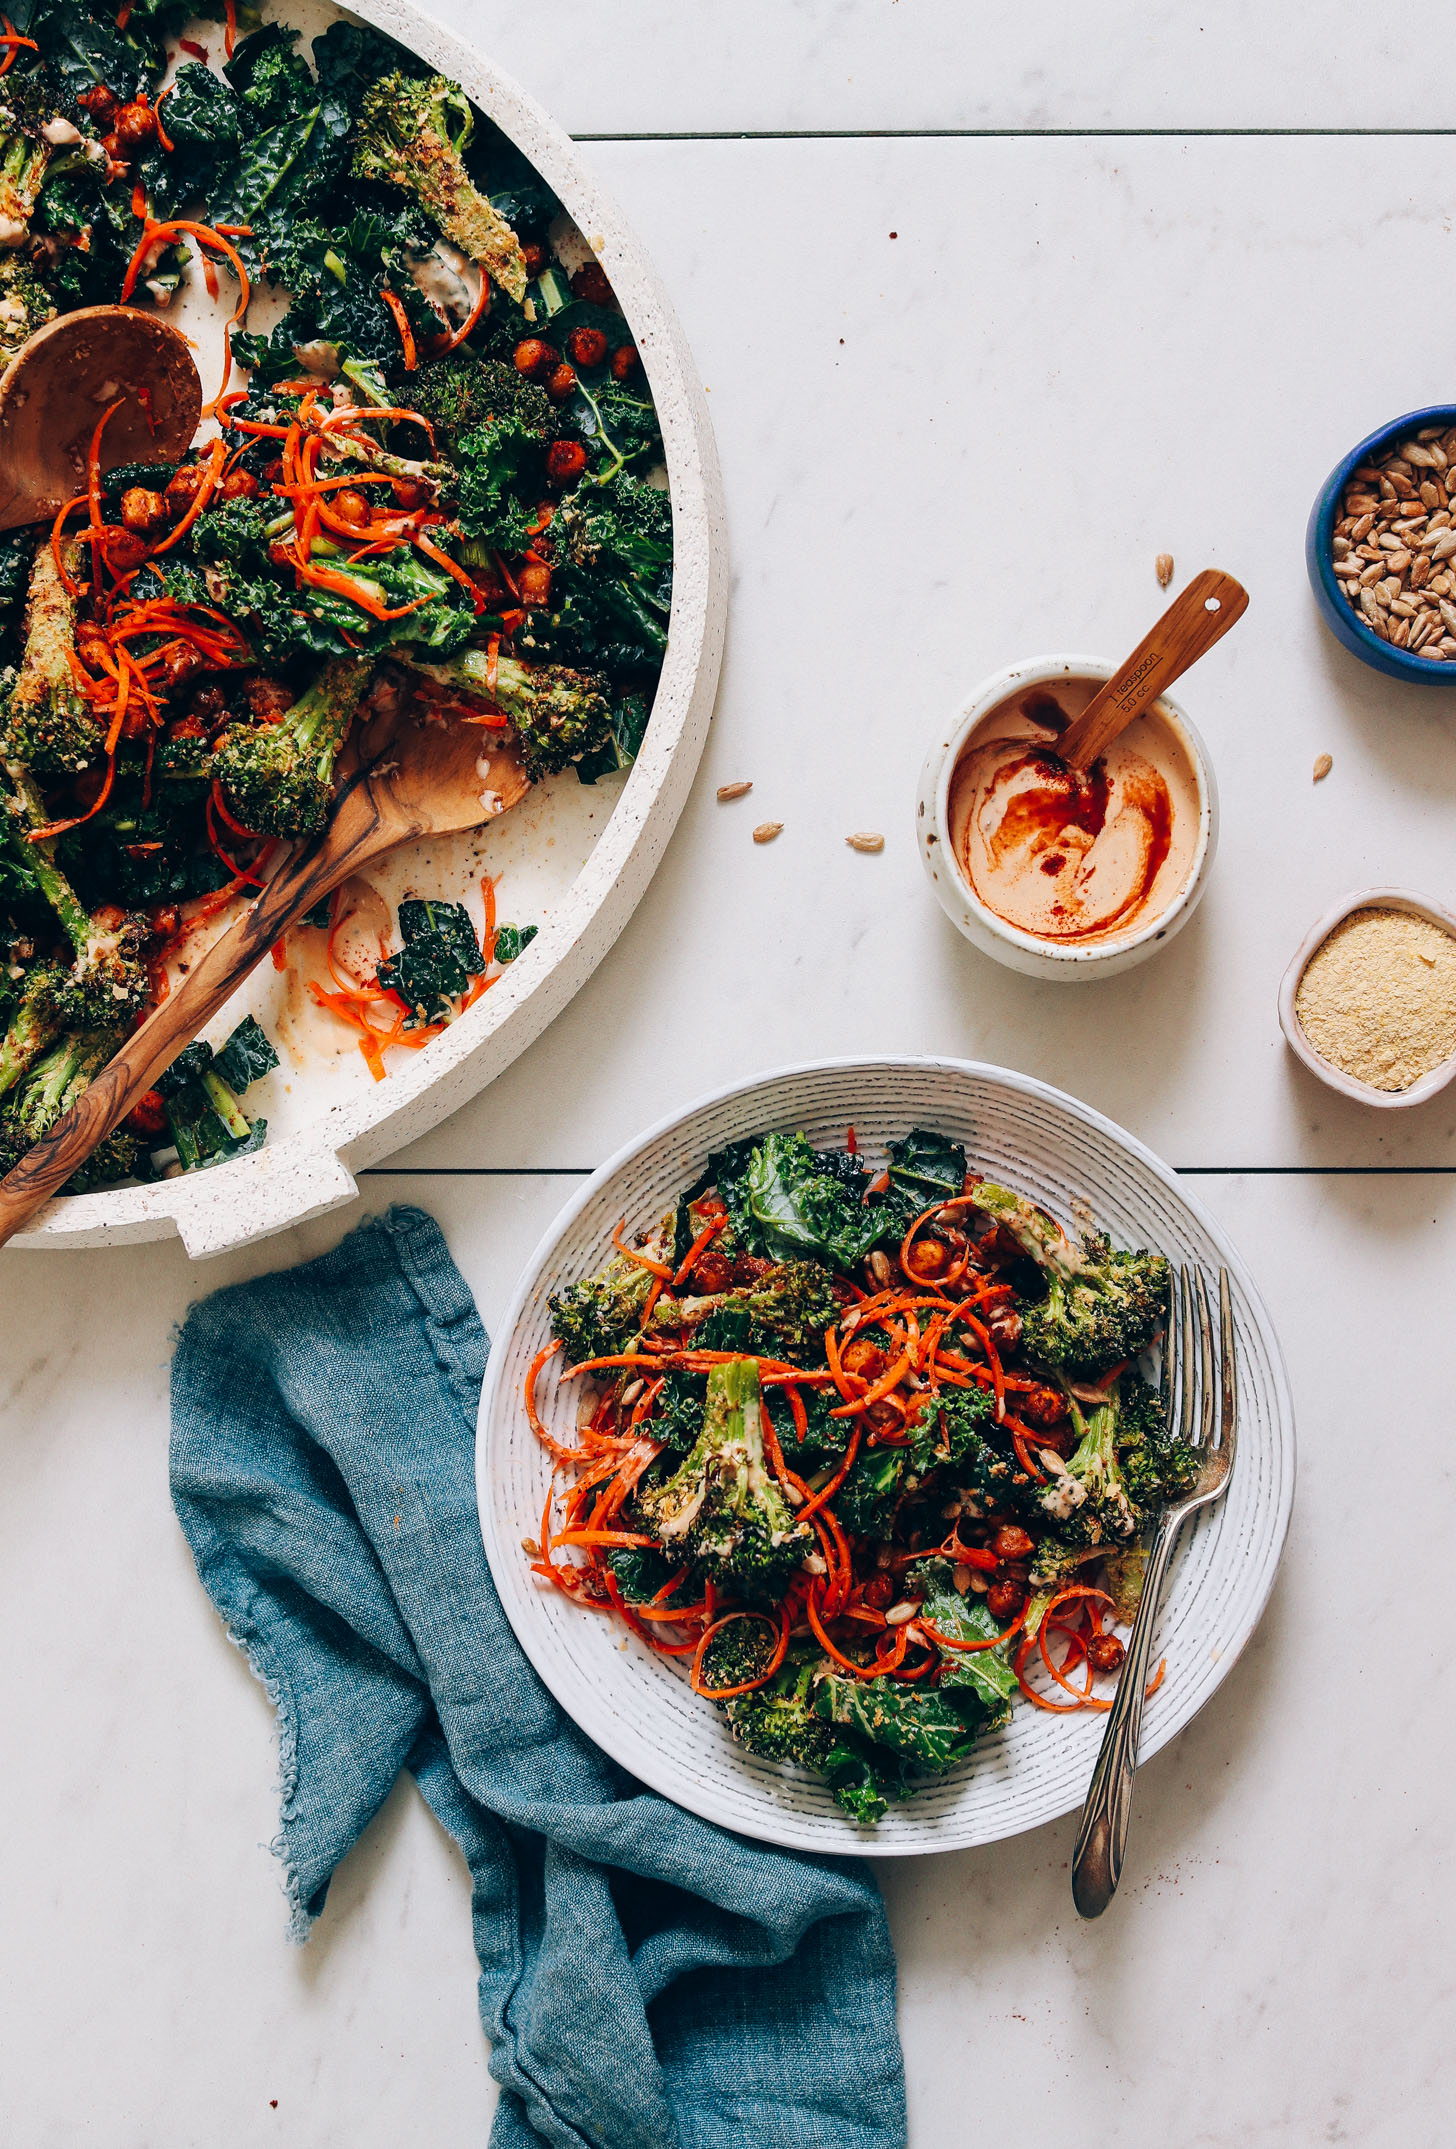 Bowl and platter of Cheesy Roasted Broccoli & Chickpea Kale Salad beside a bowl of Smoky Chipotle Dressing